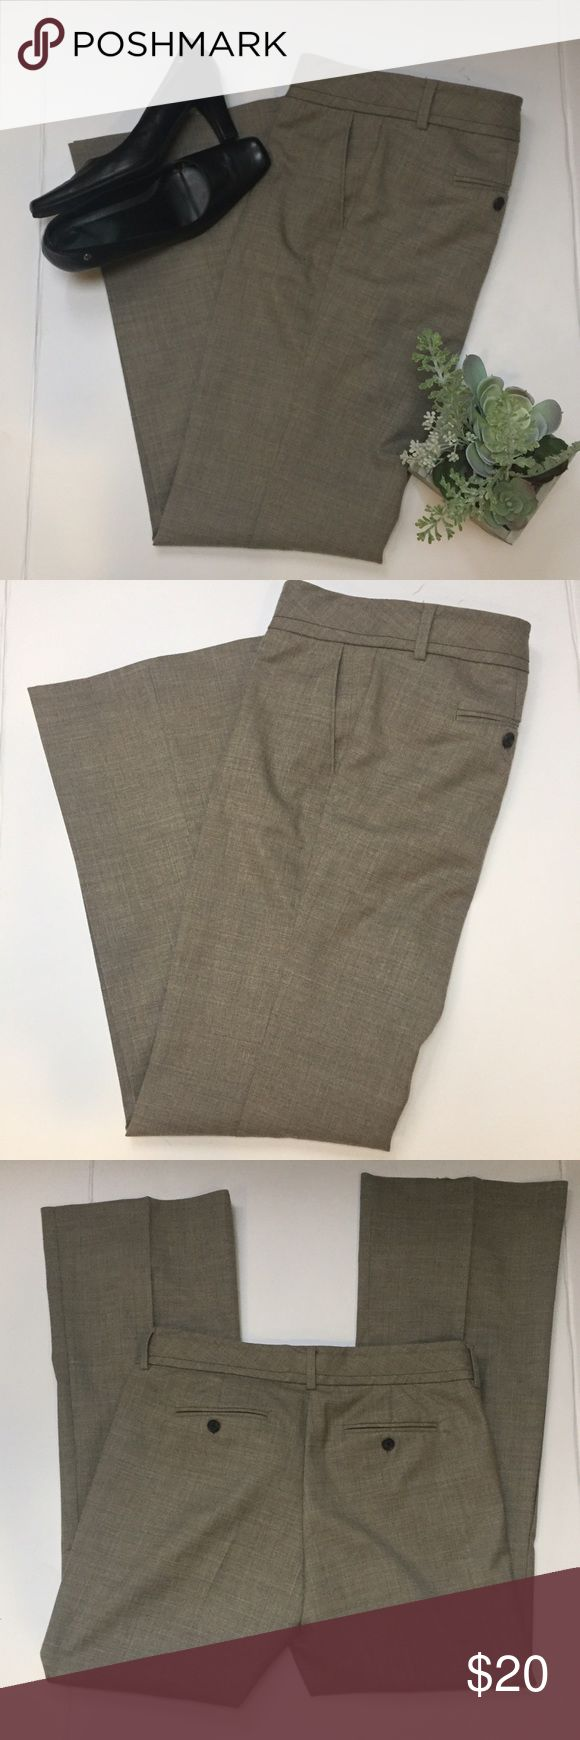 """Banana Republic Women's Size 10 R Pants Martin Fit Banana Republic Women's Size 10 R Pants Martin Fit Beige  68% polyester 30% wool 2% spandex  RN54023 CA17897 8 1/2 rise, 32"""" inseam, 41"""" total length, 18"""" flat waist double latches at waist and button closure with zipper.  2 side pockets & 2 rear pocket Pants are in good preowned condition they do have some pre-pilling in the crotch but nothing noticeable very nice pair of career pants. Banana Republic Pants Trousers"""